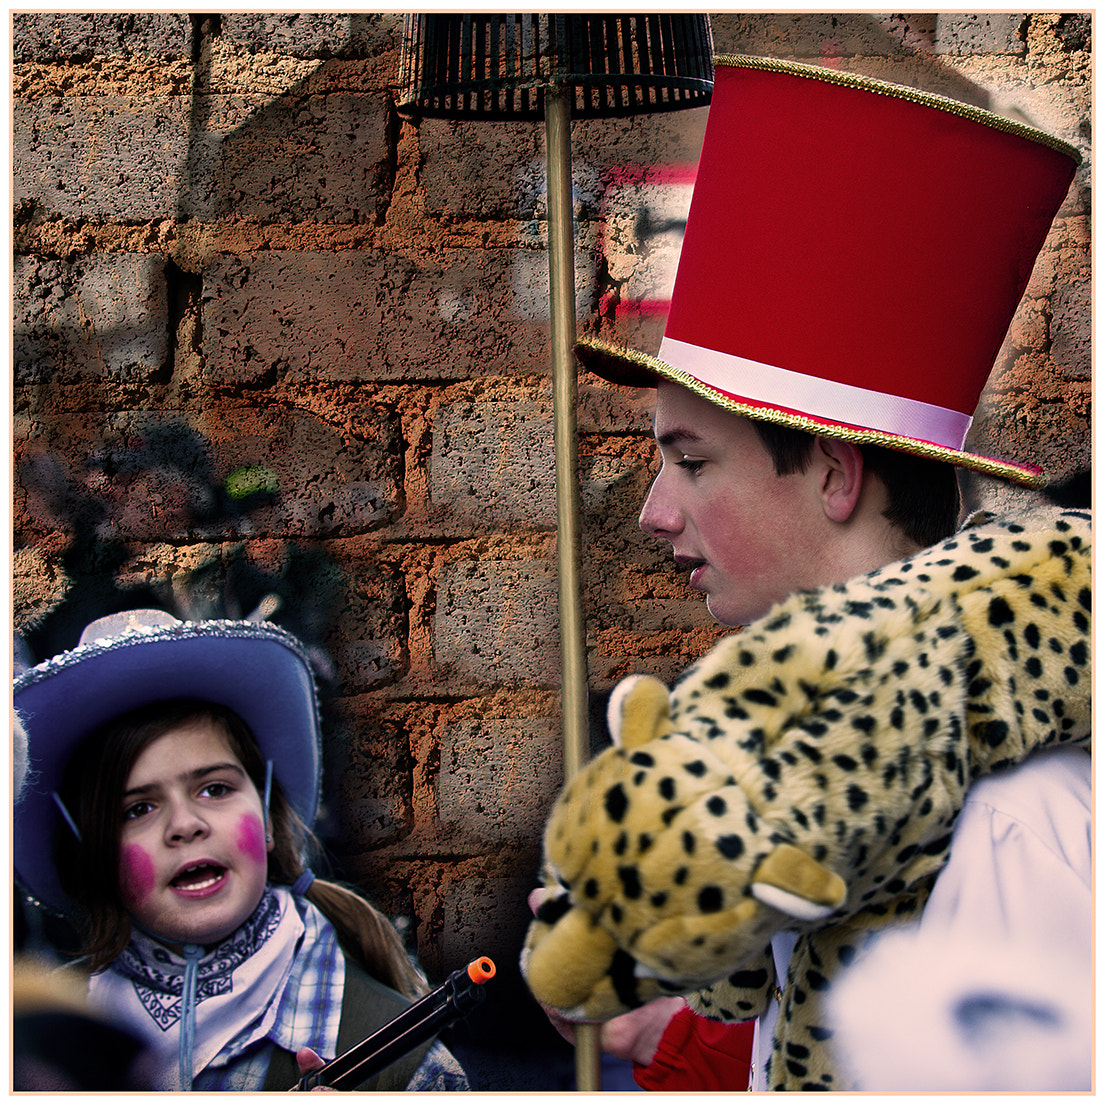 Photograph carnaval01 by Jean-Jacques Bauduin on 500px